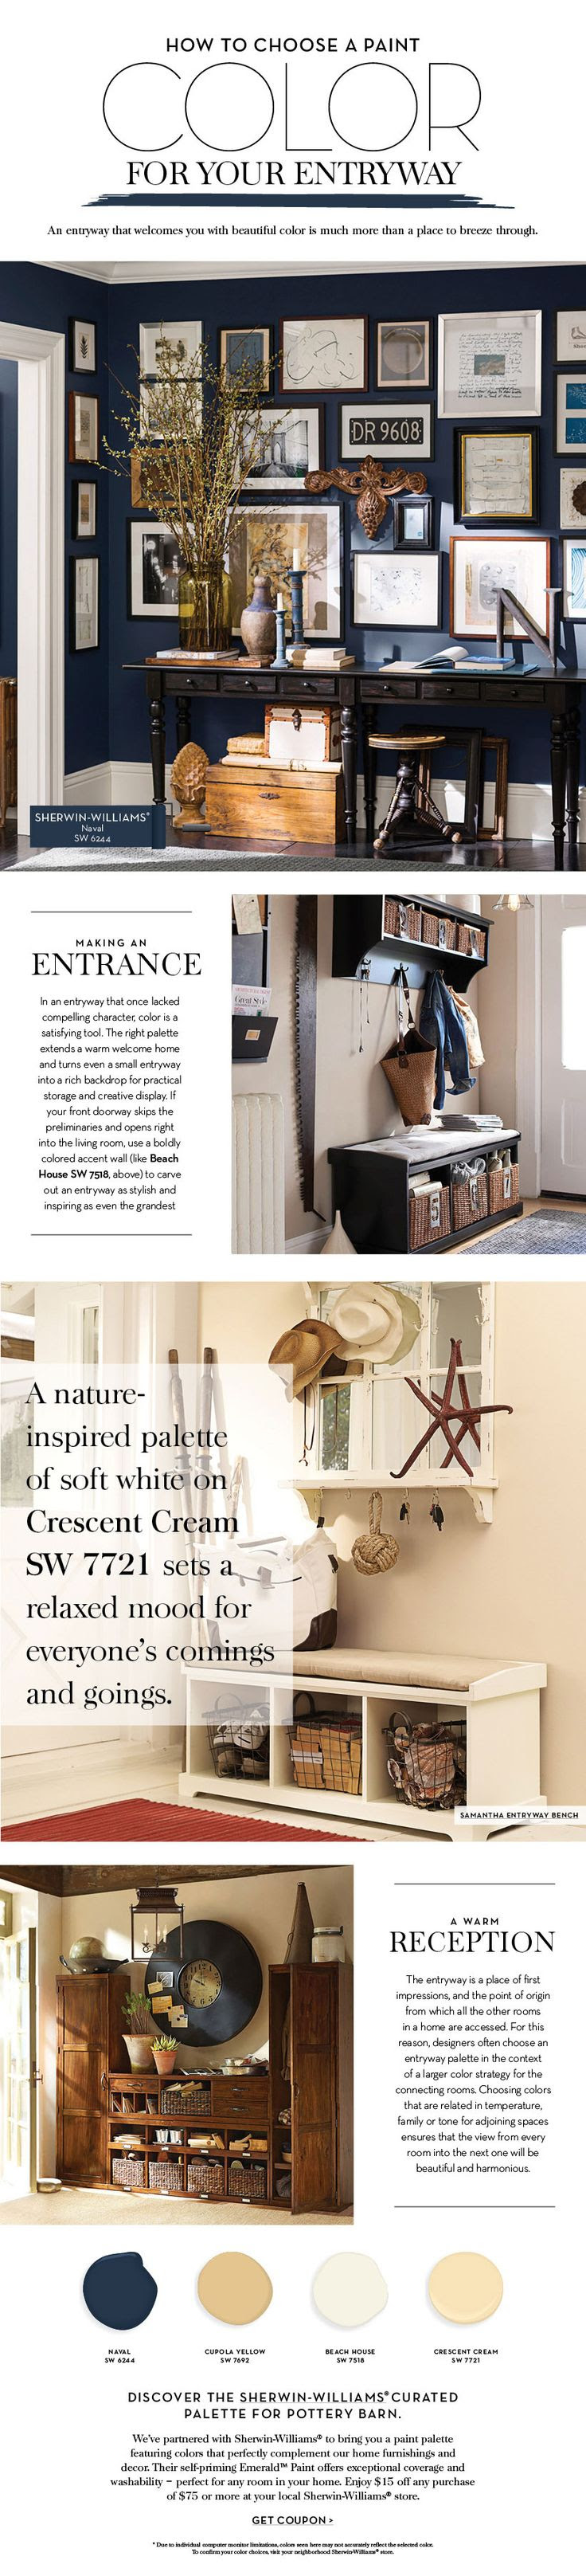 Choose a Paint Color For Your Entryway | Pottery Barn